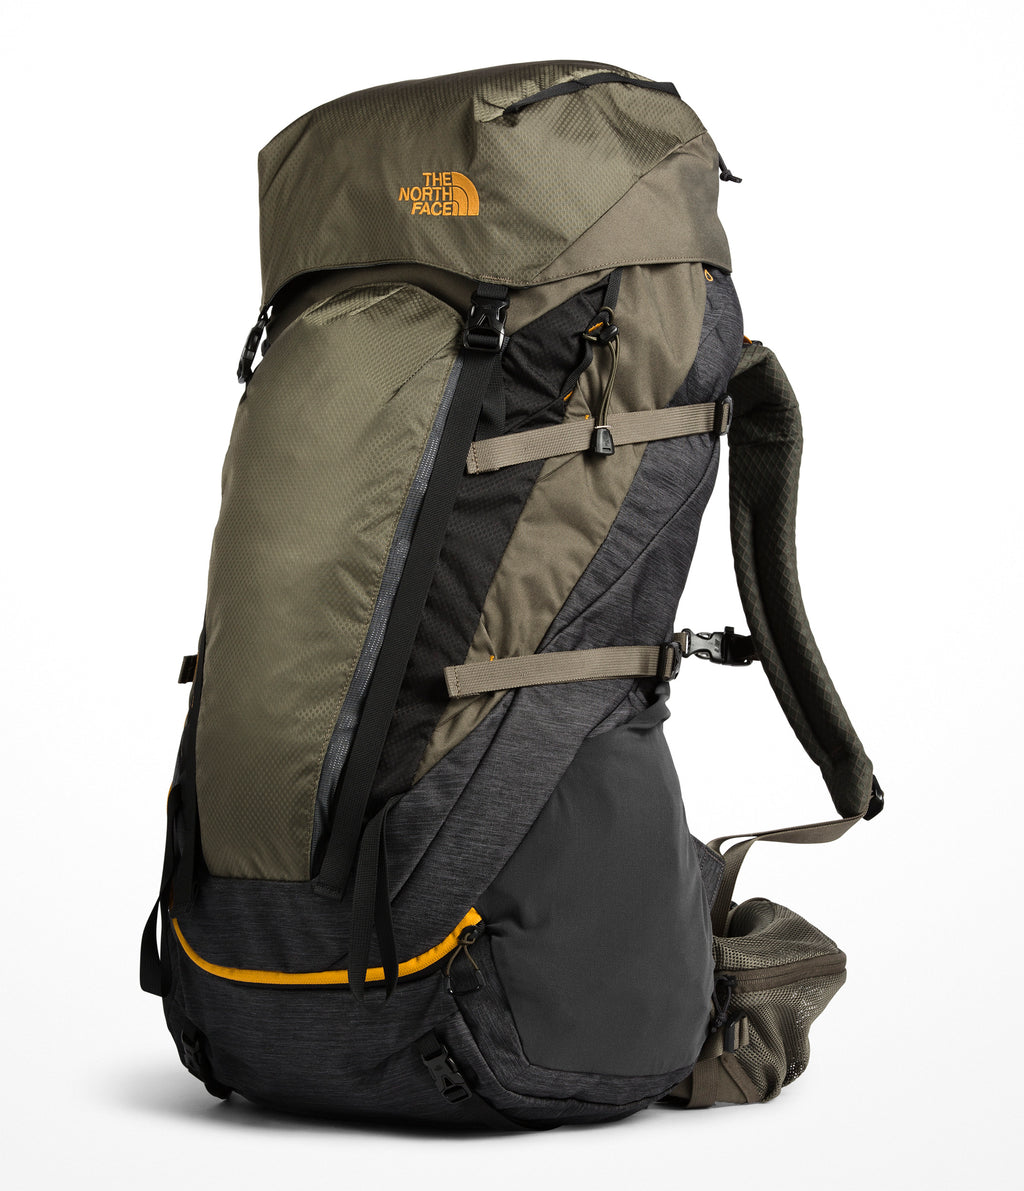 The North Face Terra 65 Backpacking Pack - Men's